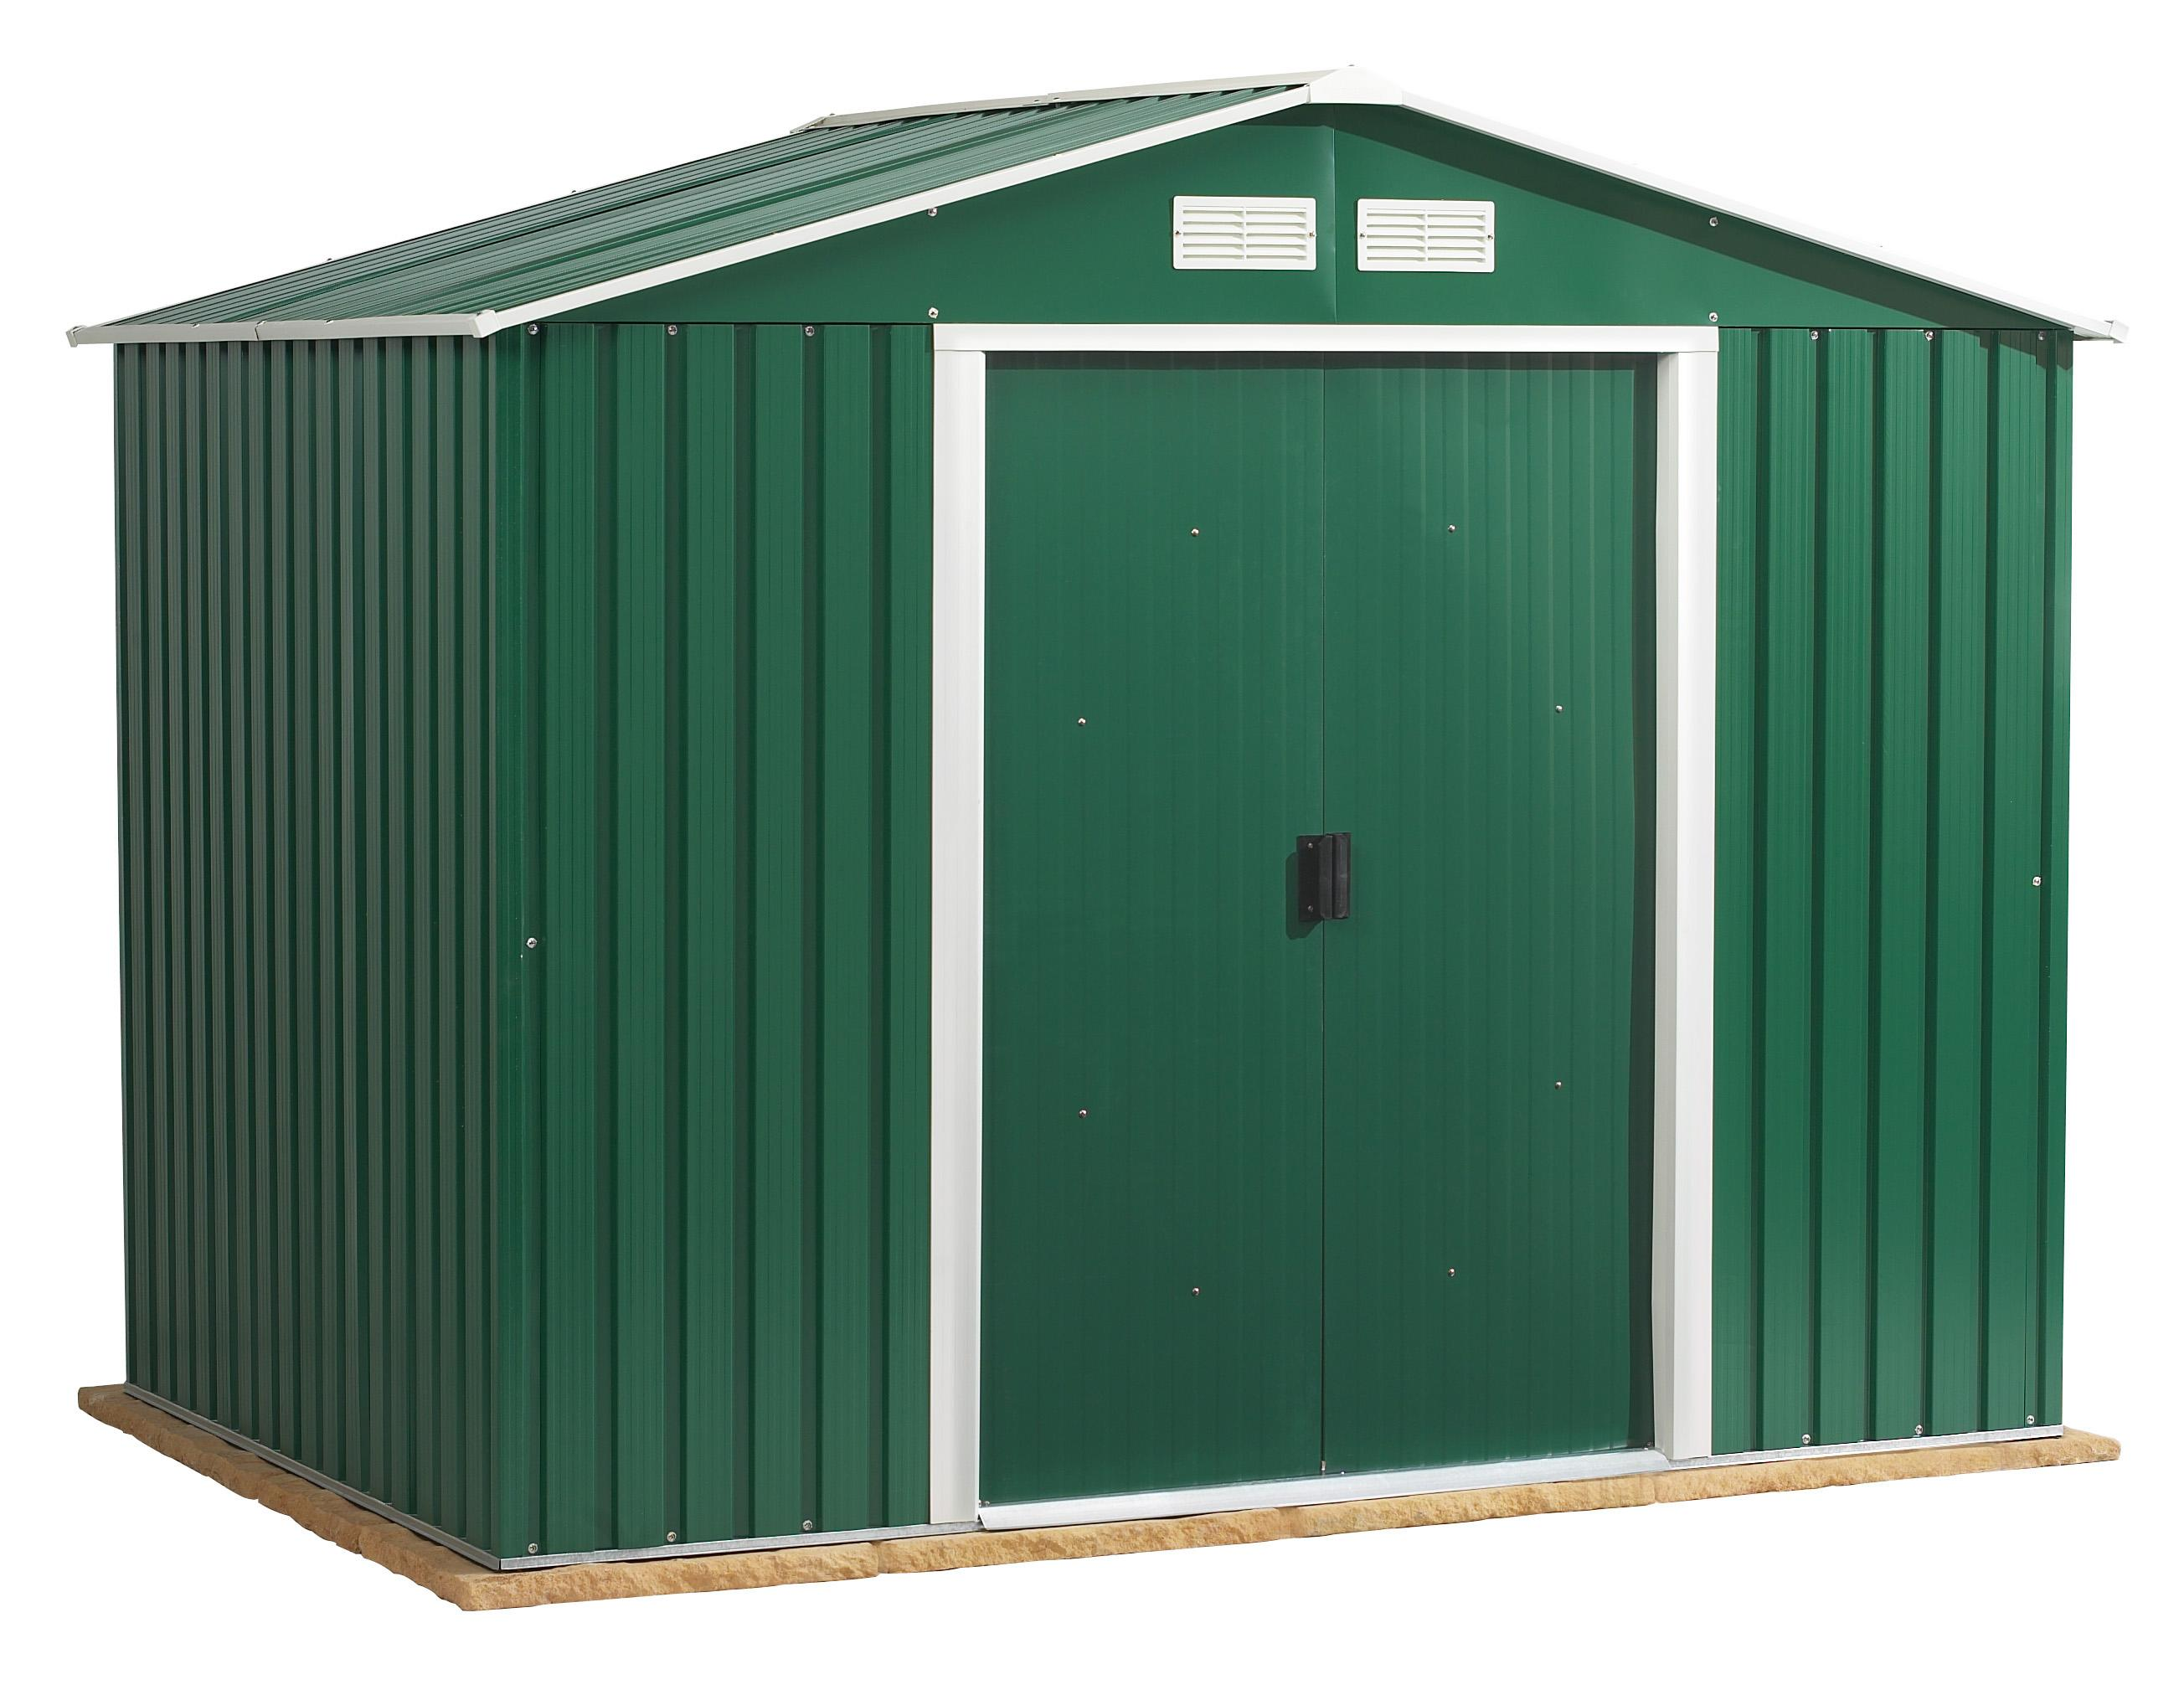 garden prices lifetime sheds suncast outdoor sturdy resin shed small plastic metal suppliers storage tuff for sale